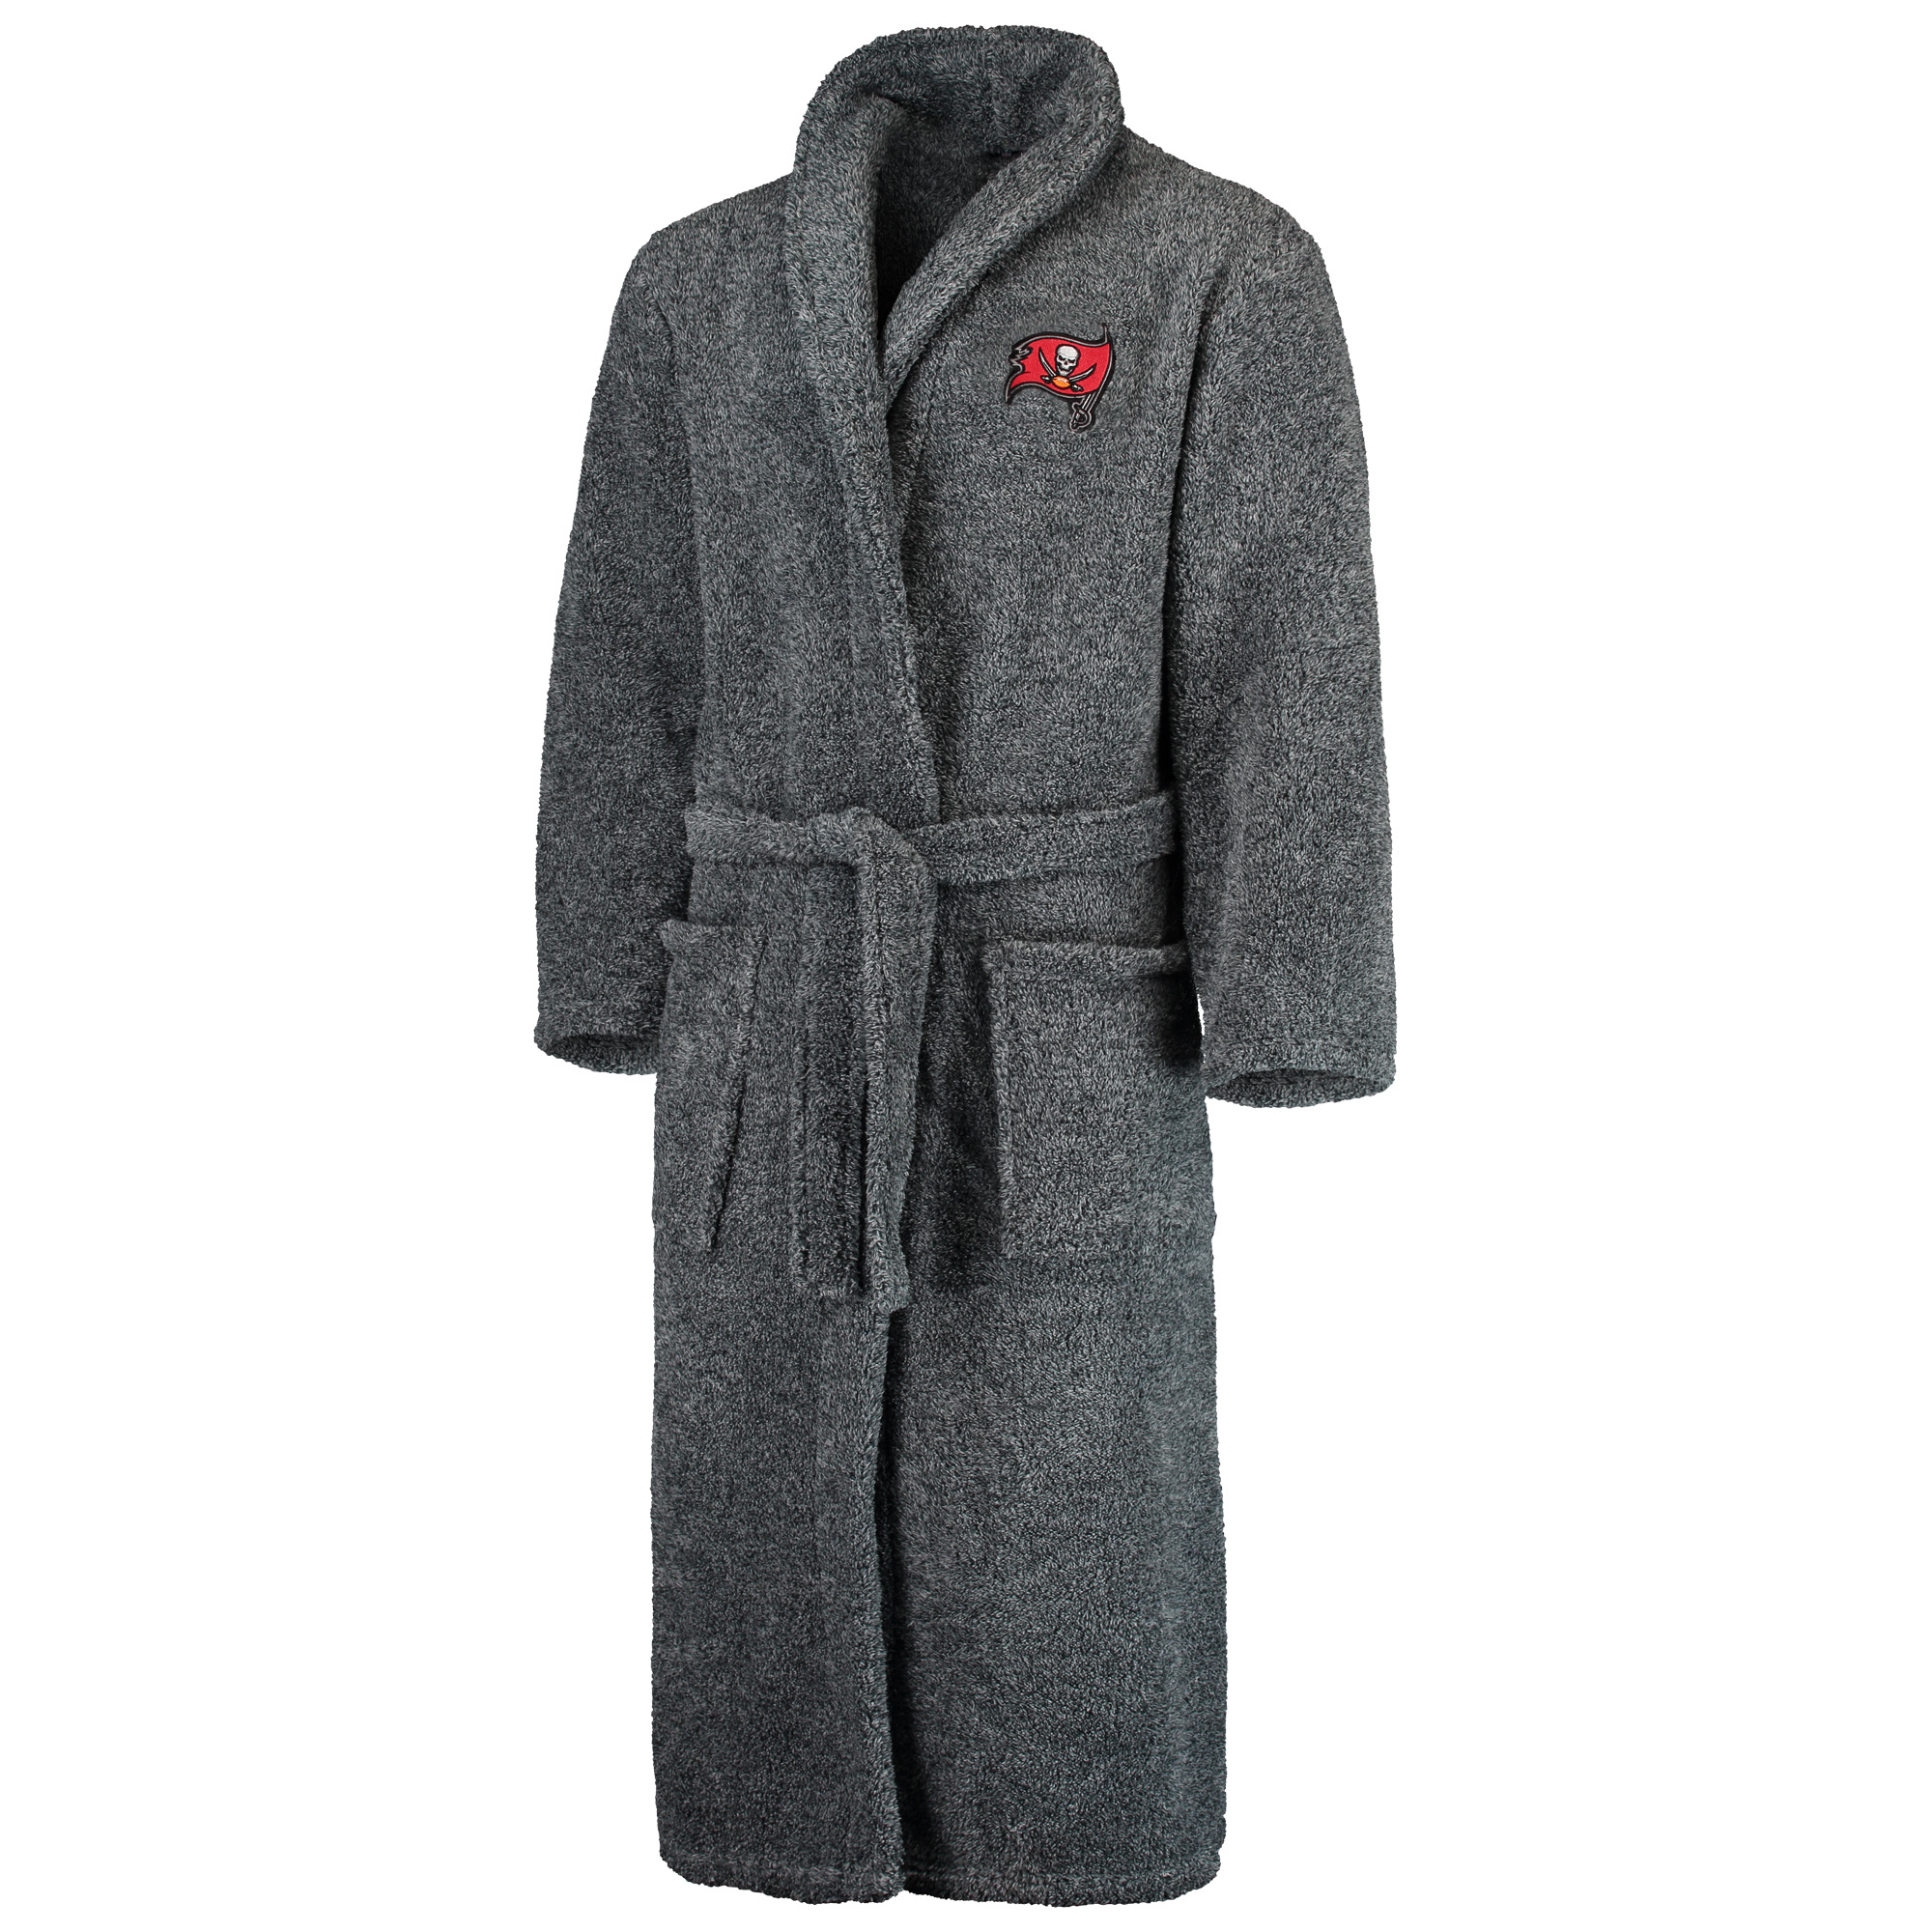 Tampa Bay Buccaneers Concepts Sport Trifecta Robe - Charcoal